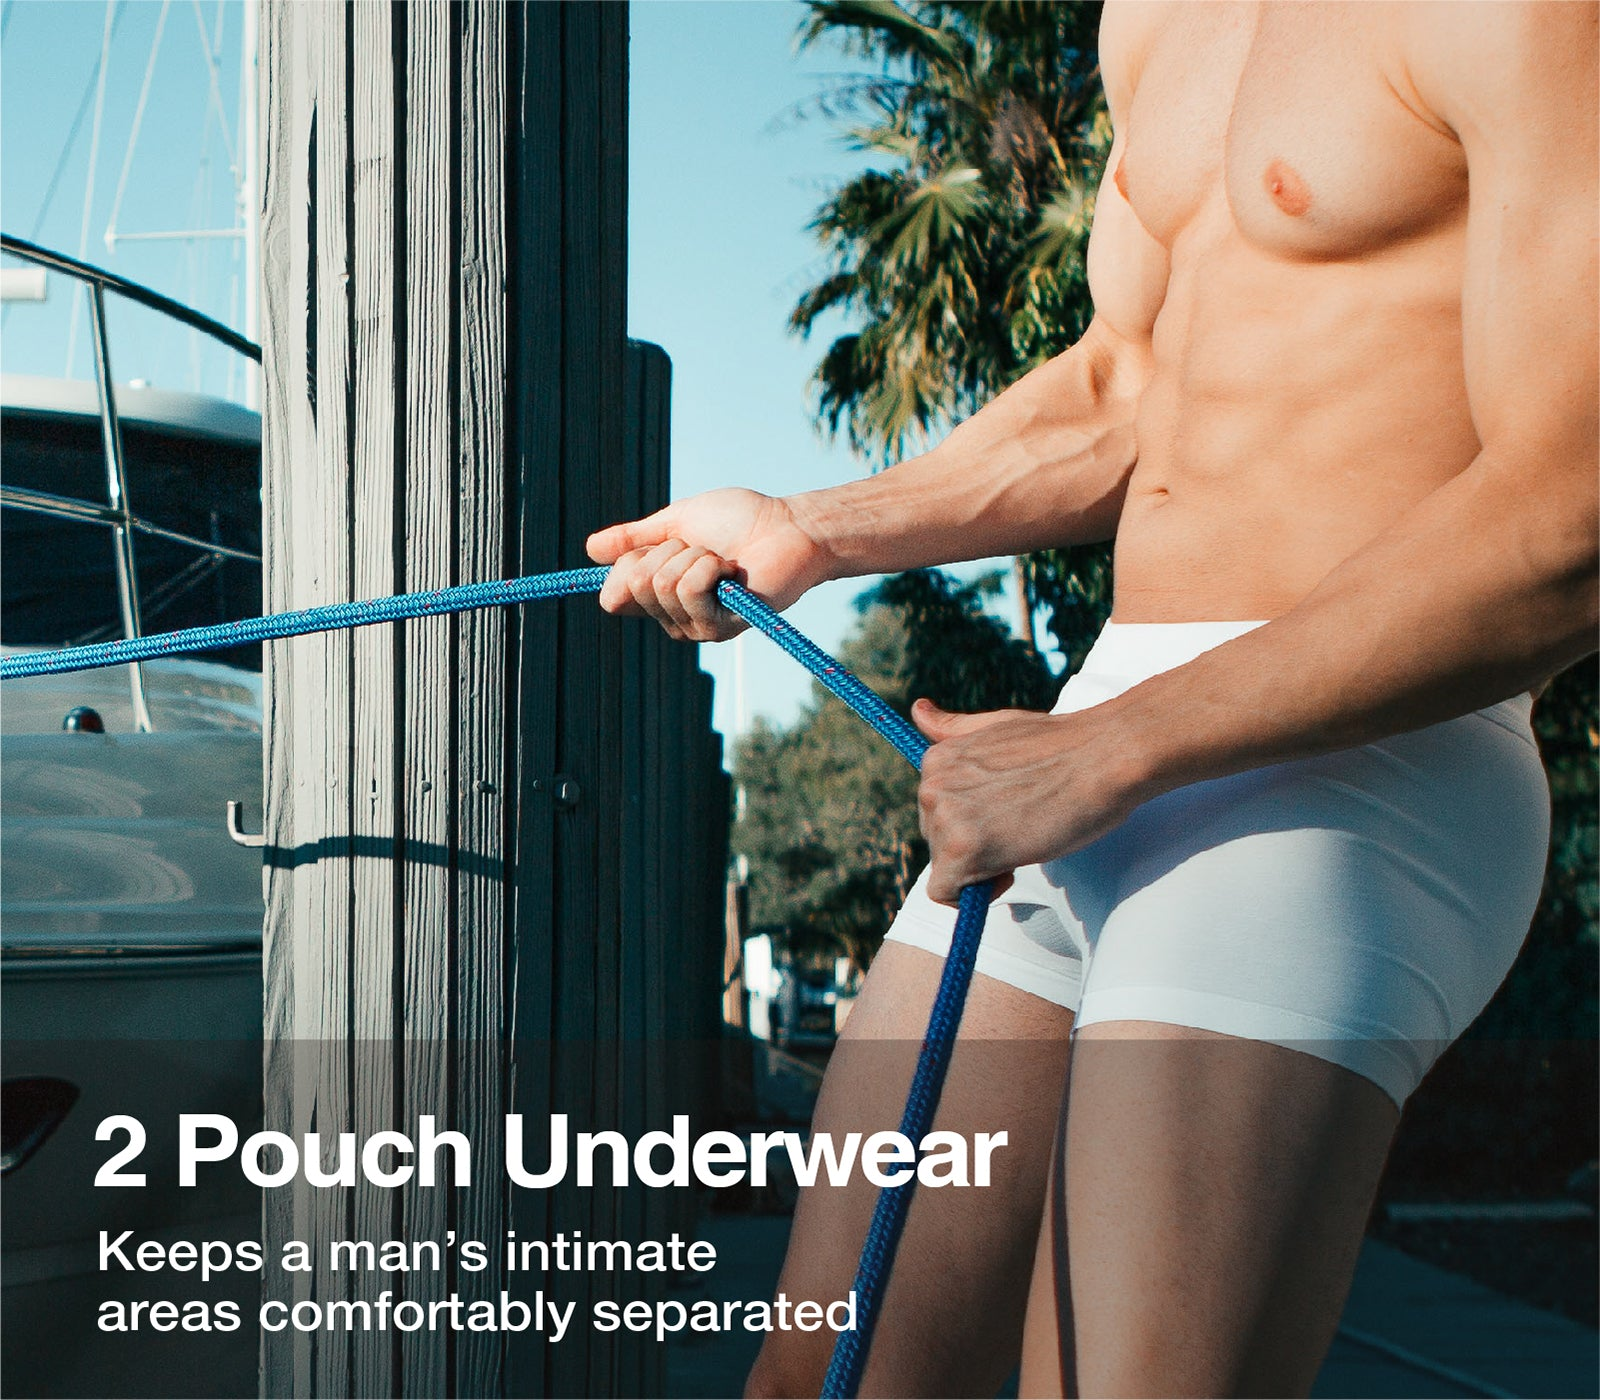 Separatec mens underwear, 2 Pouch Boxer Briefs, Innovative Daul Pouch Patent Technology